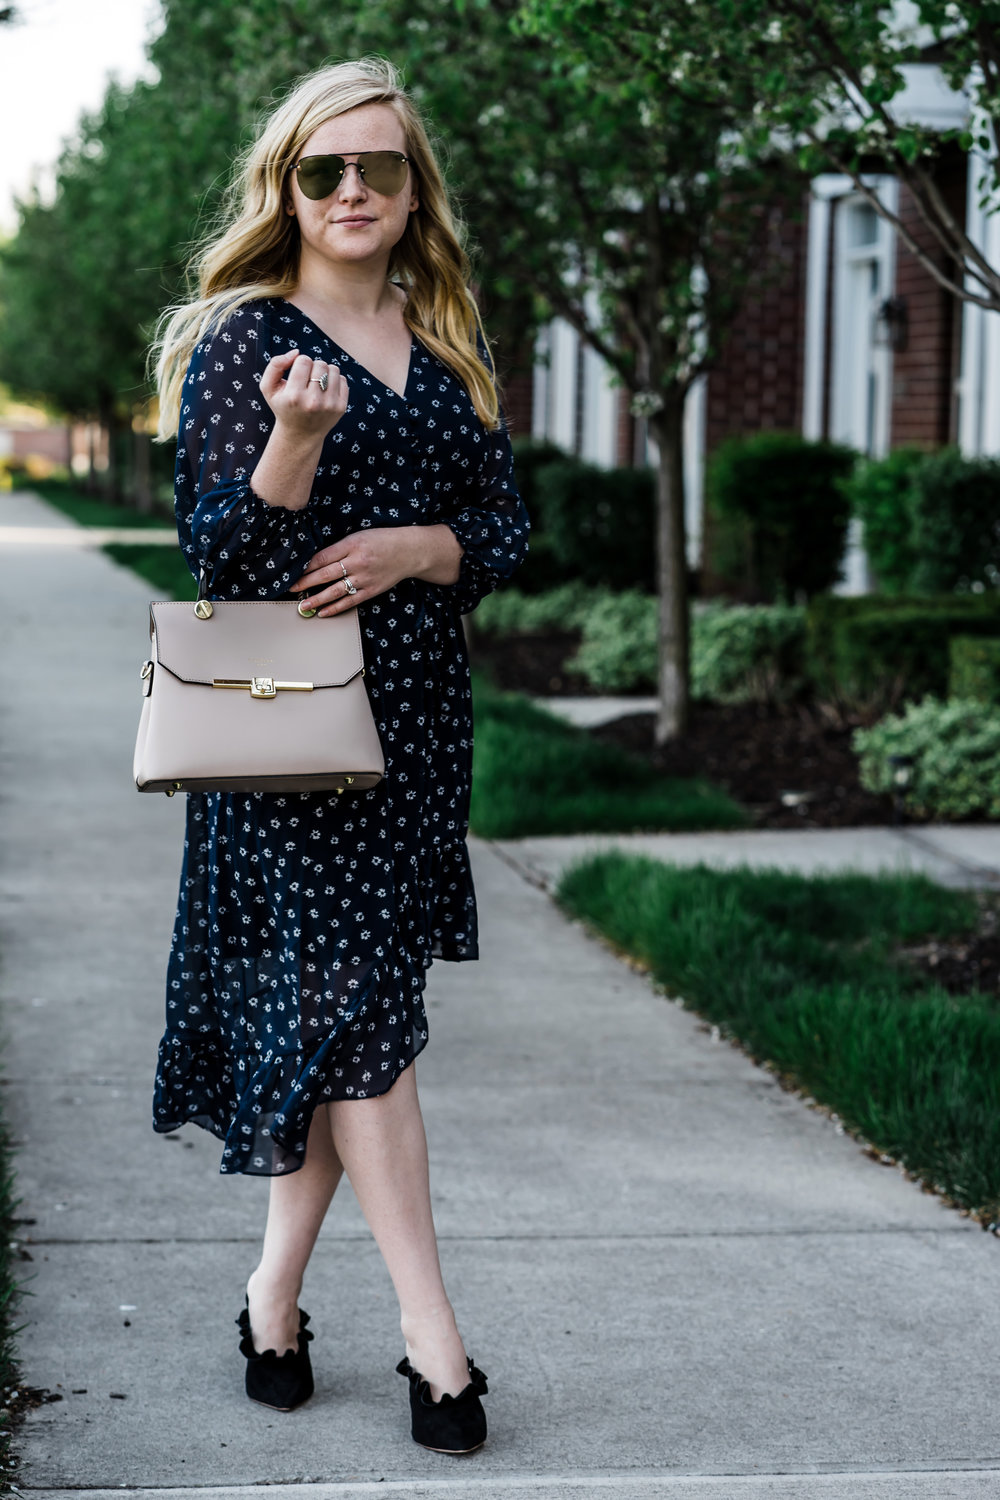 Maggie a la Mode - How to Wear Midi Dresses, Affordable Midi Dresses, Joie Alithea Dress, Loeffler Randall Langley Ruffle Mules, Le Specs The Prince Mirrored Sunglasses, Camelia Roma Leather Satchel